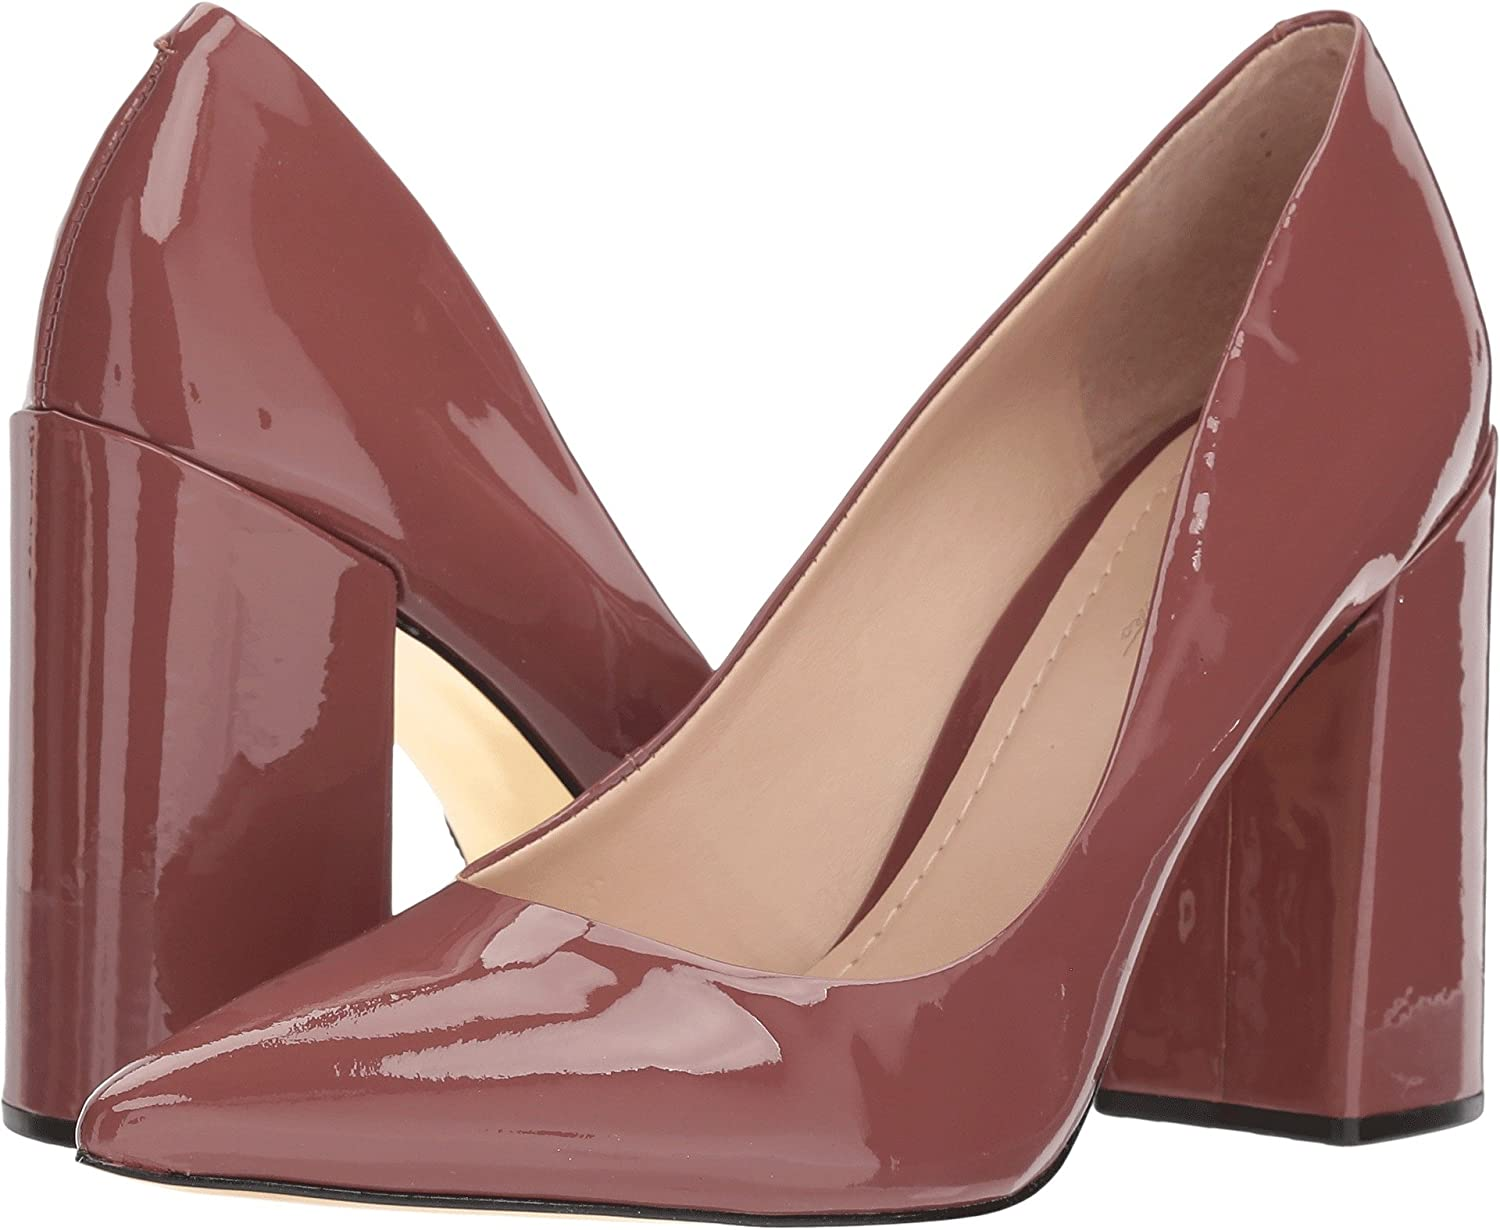 Massimo Matteo Womens Block Heel Pump B075ZXYT2L 10 B(M) US|Dusty Rose Patent